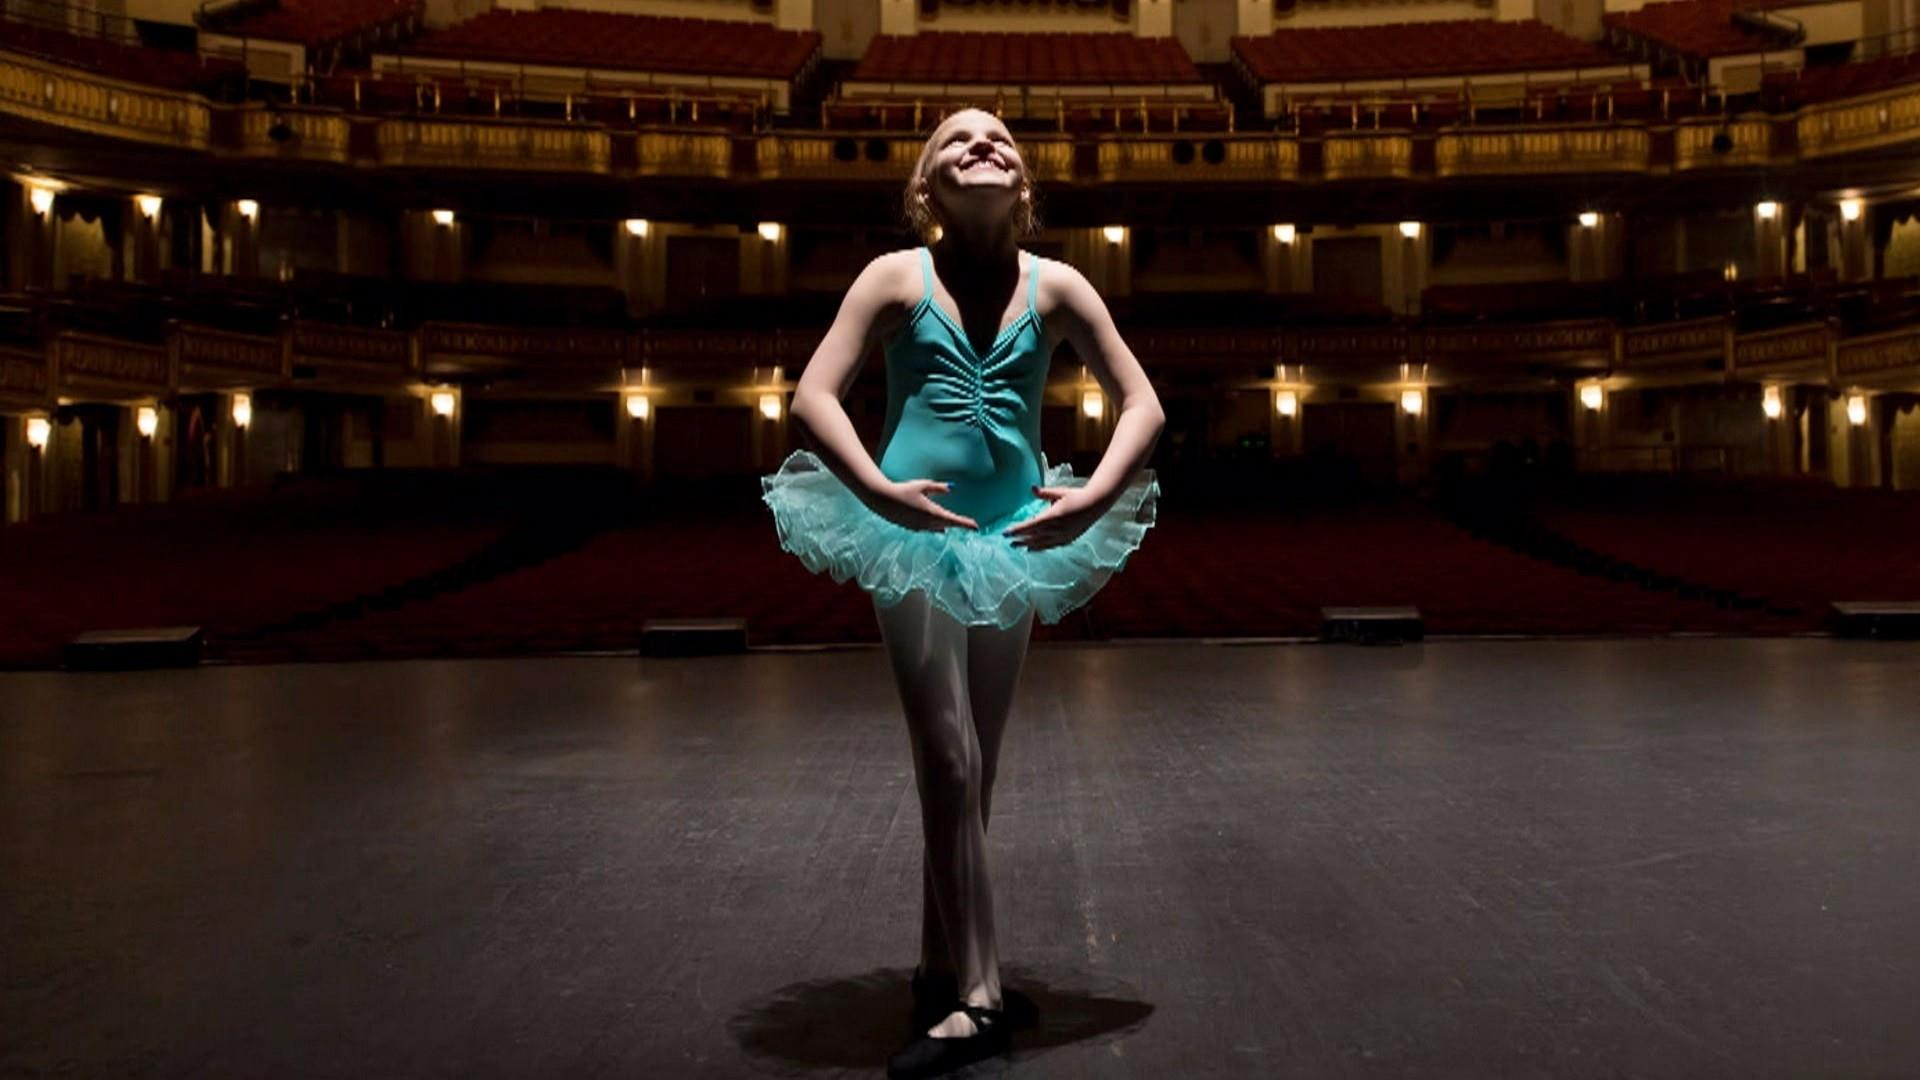 A Dancer's Dream: Aubrey Takes The Stage